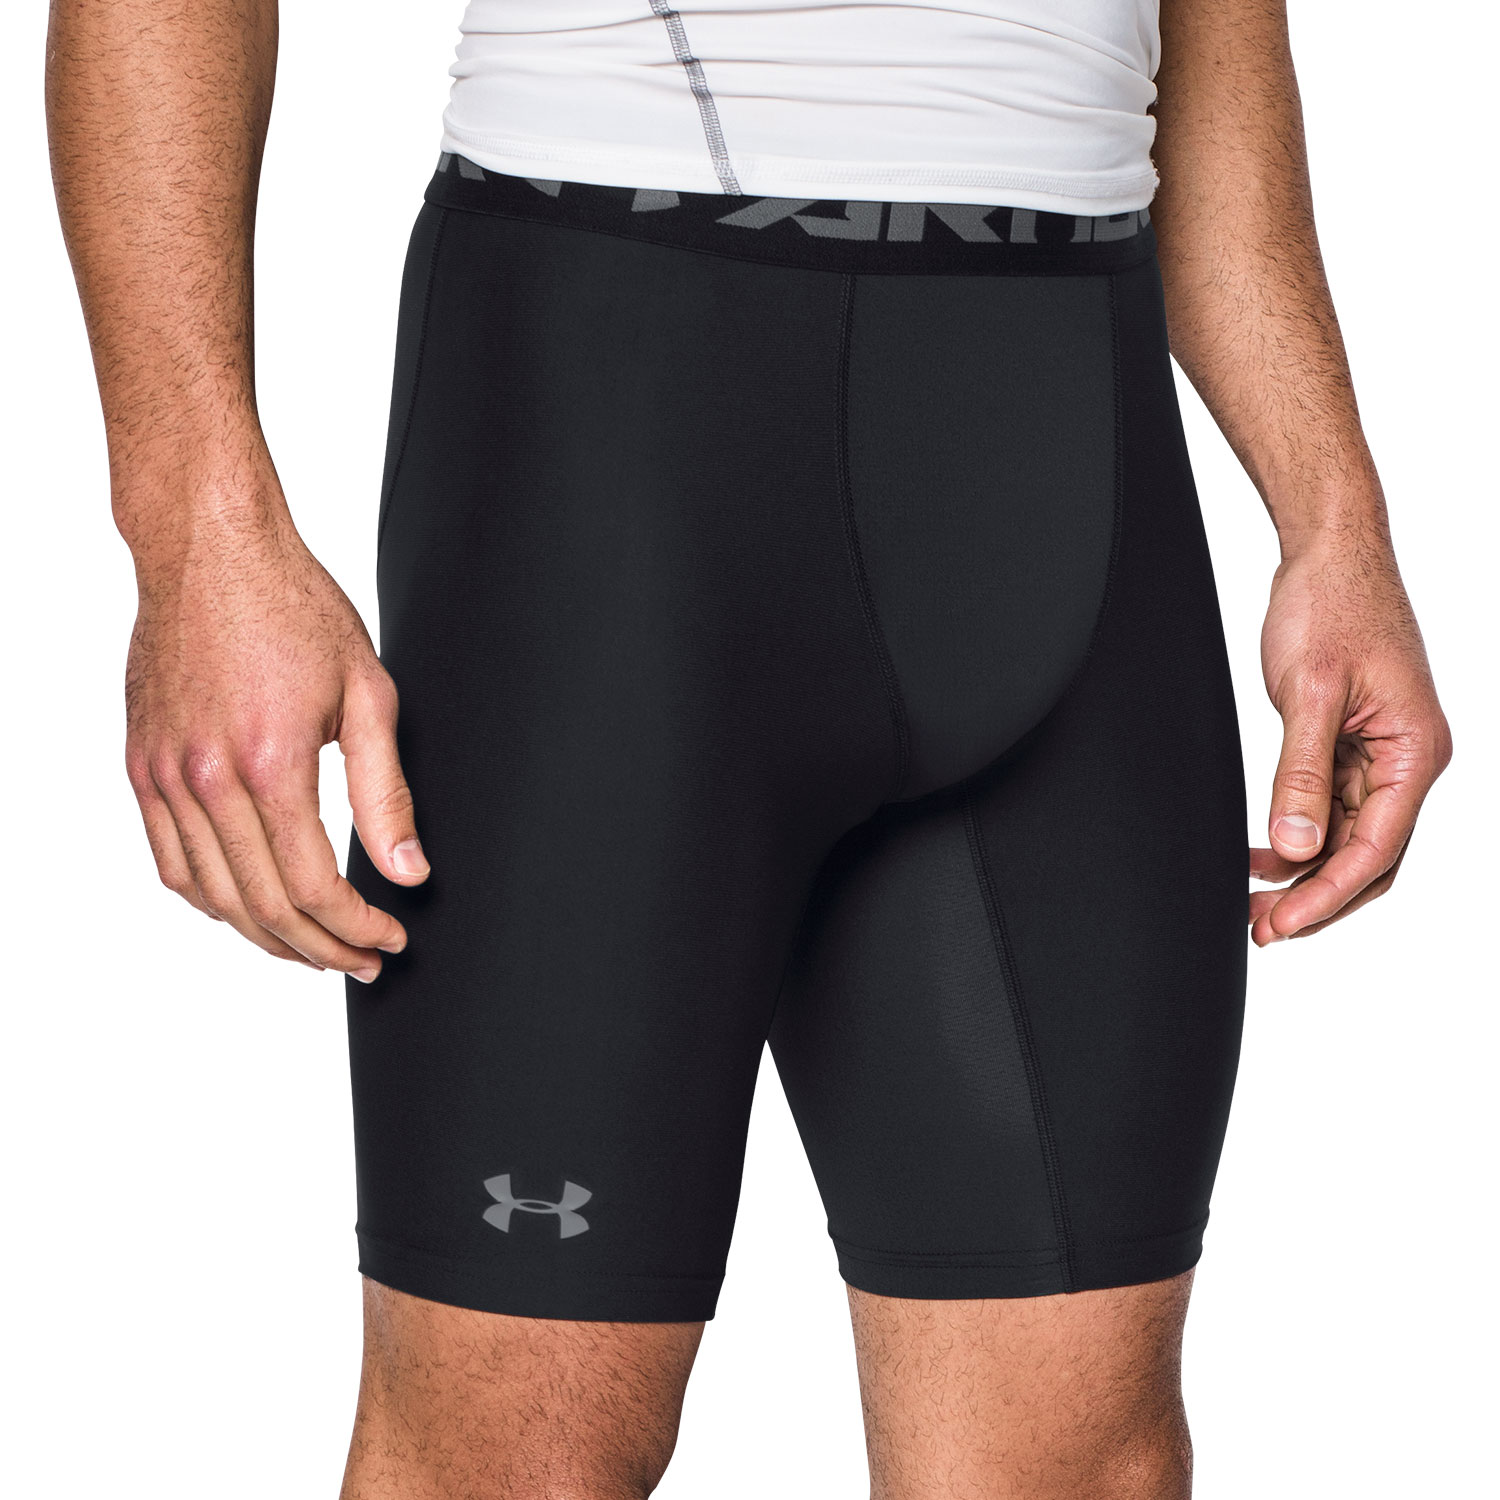 Under Armour HeatGear Armour Short Compression Tights - Black